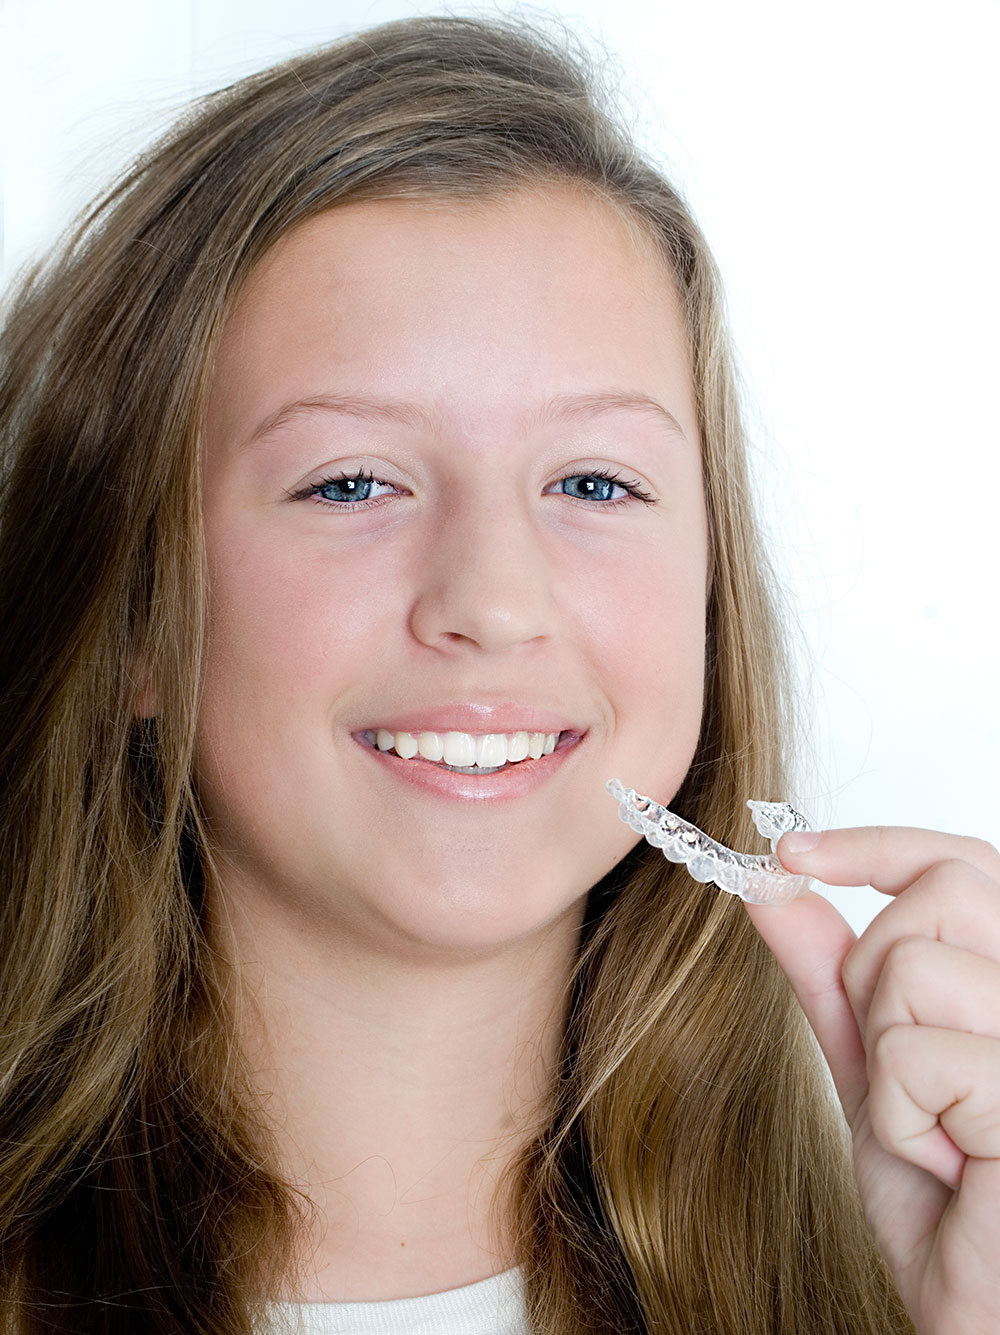 O'Keeffe Orthodontics Smile and retainer